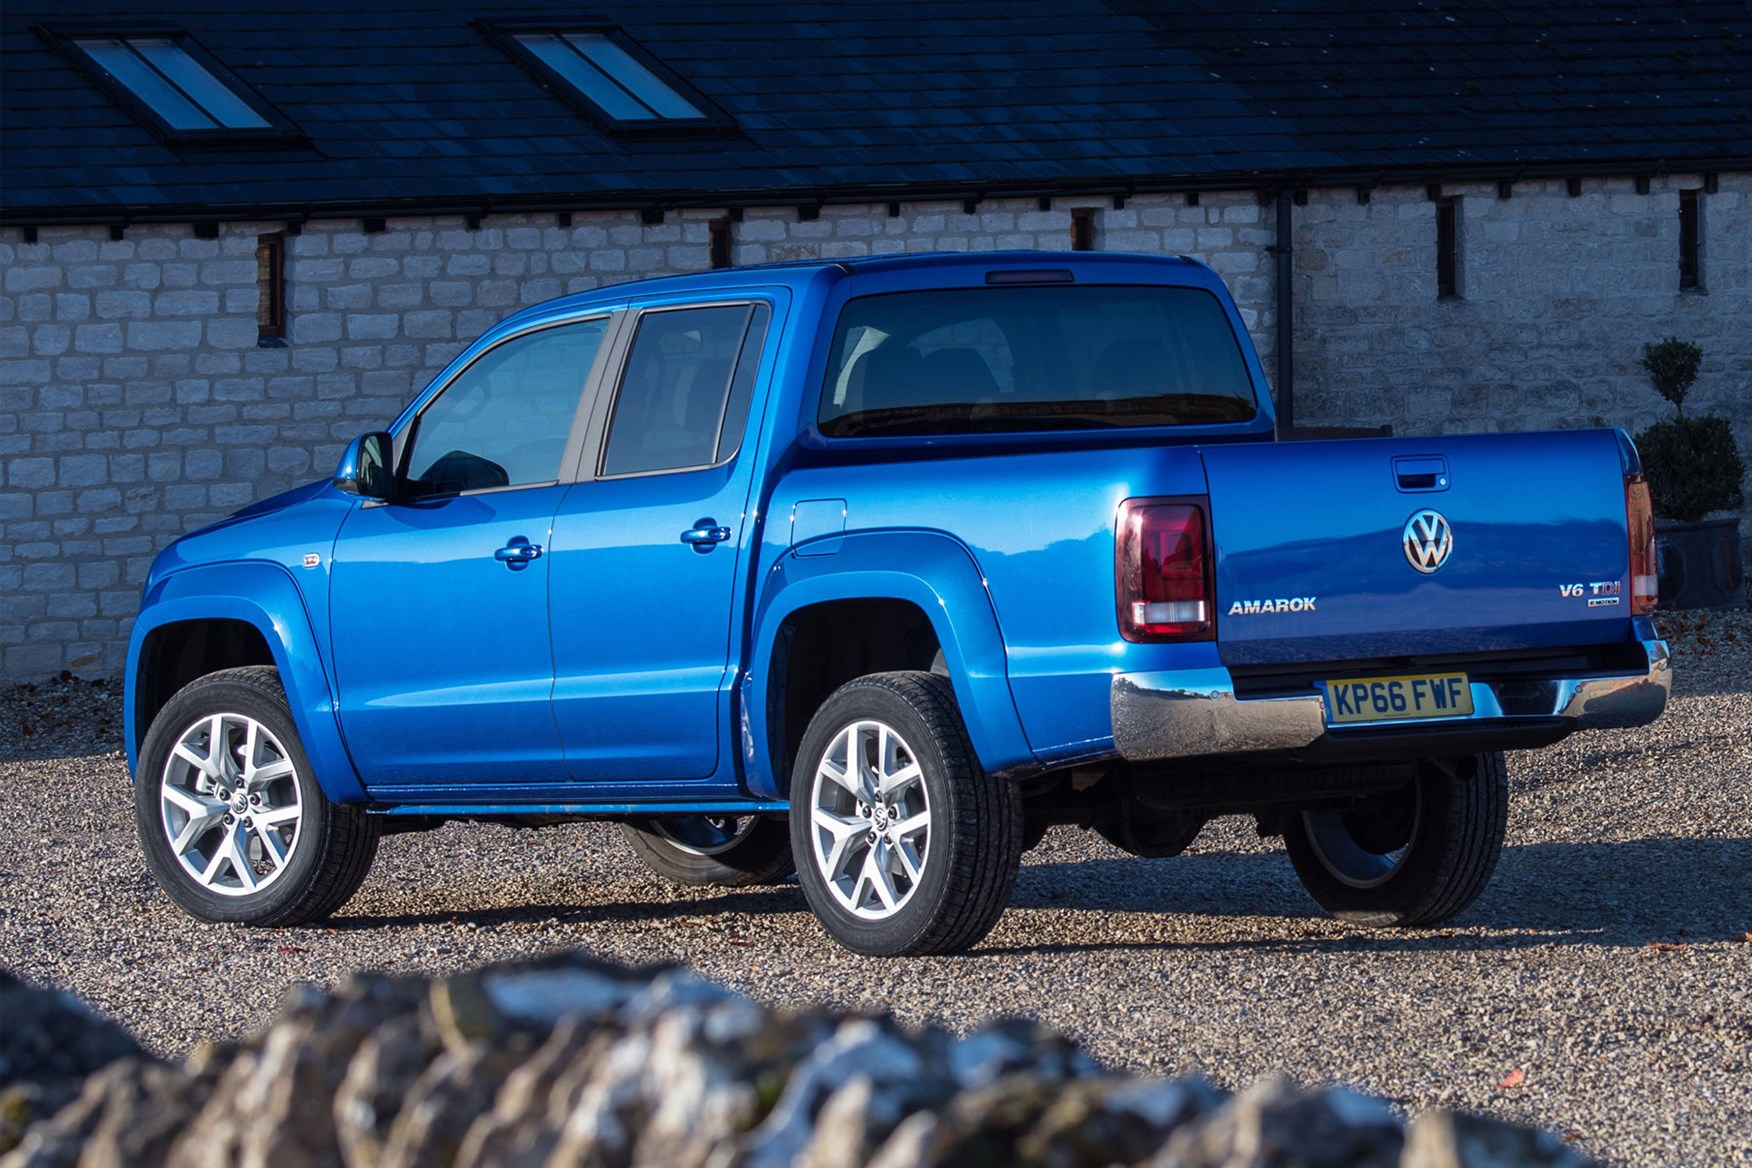 Volkswagen Amarok pickup review (2011-on) | Parkers